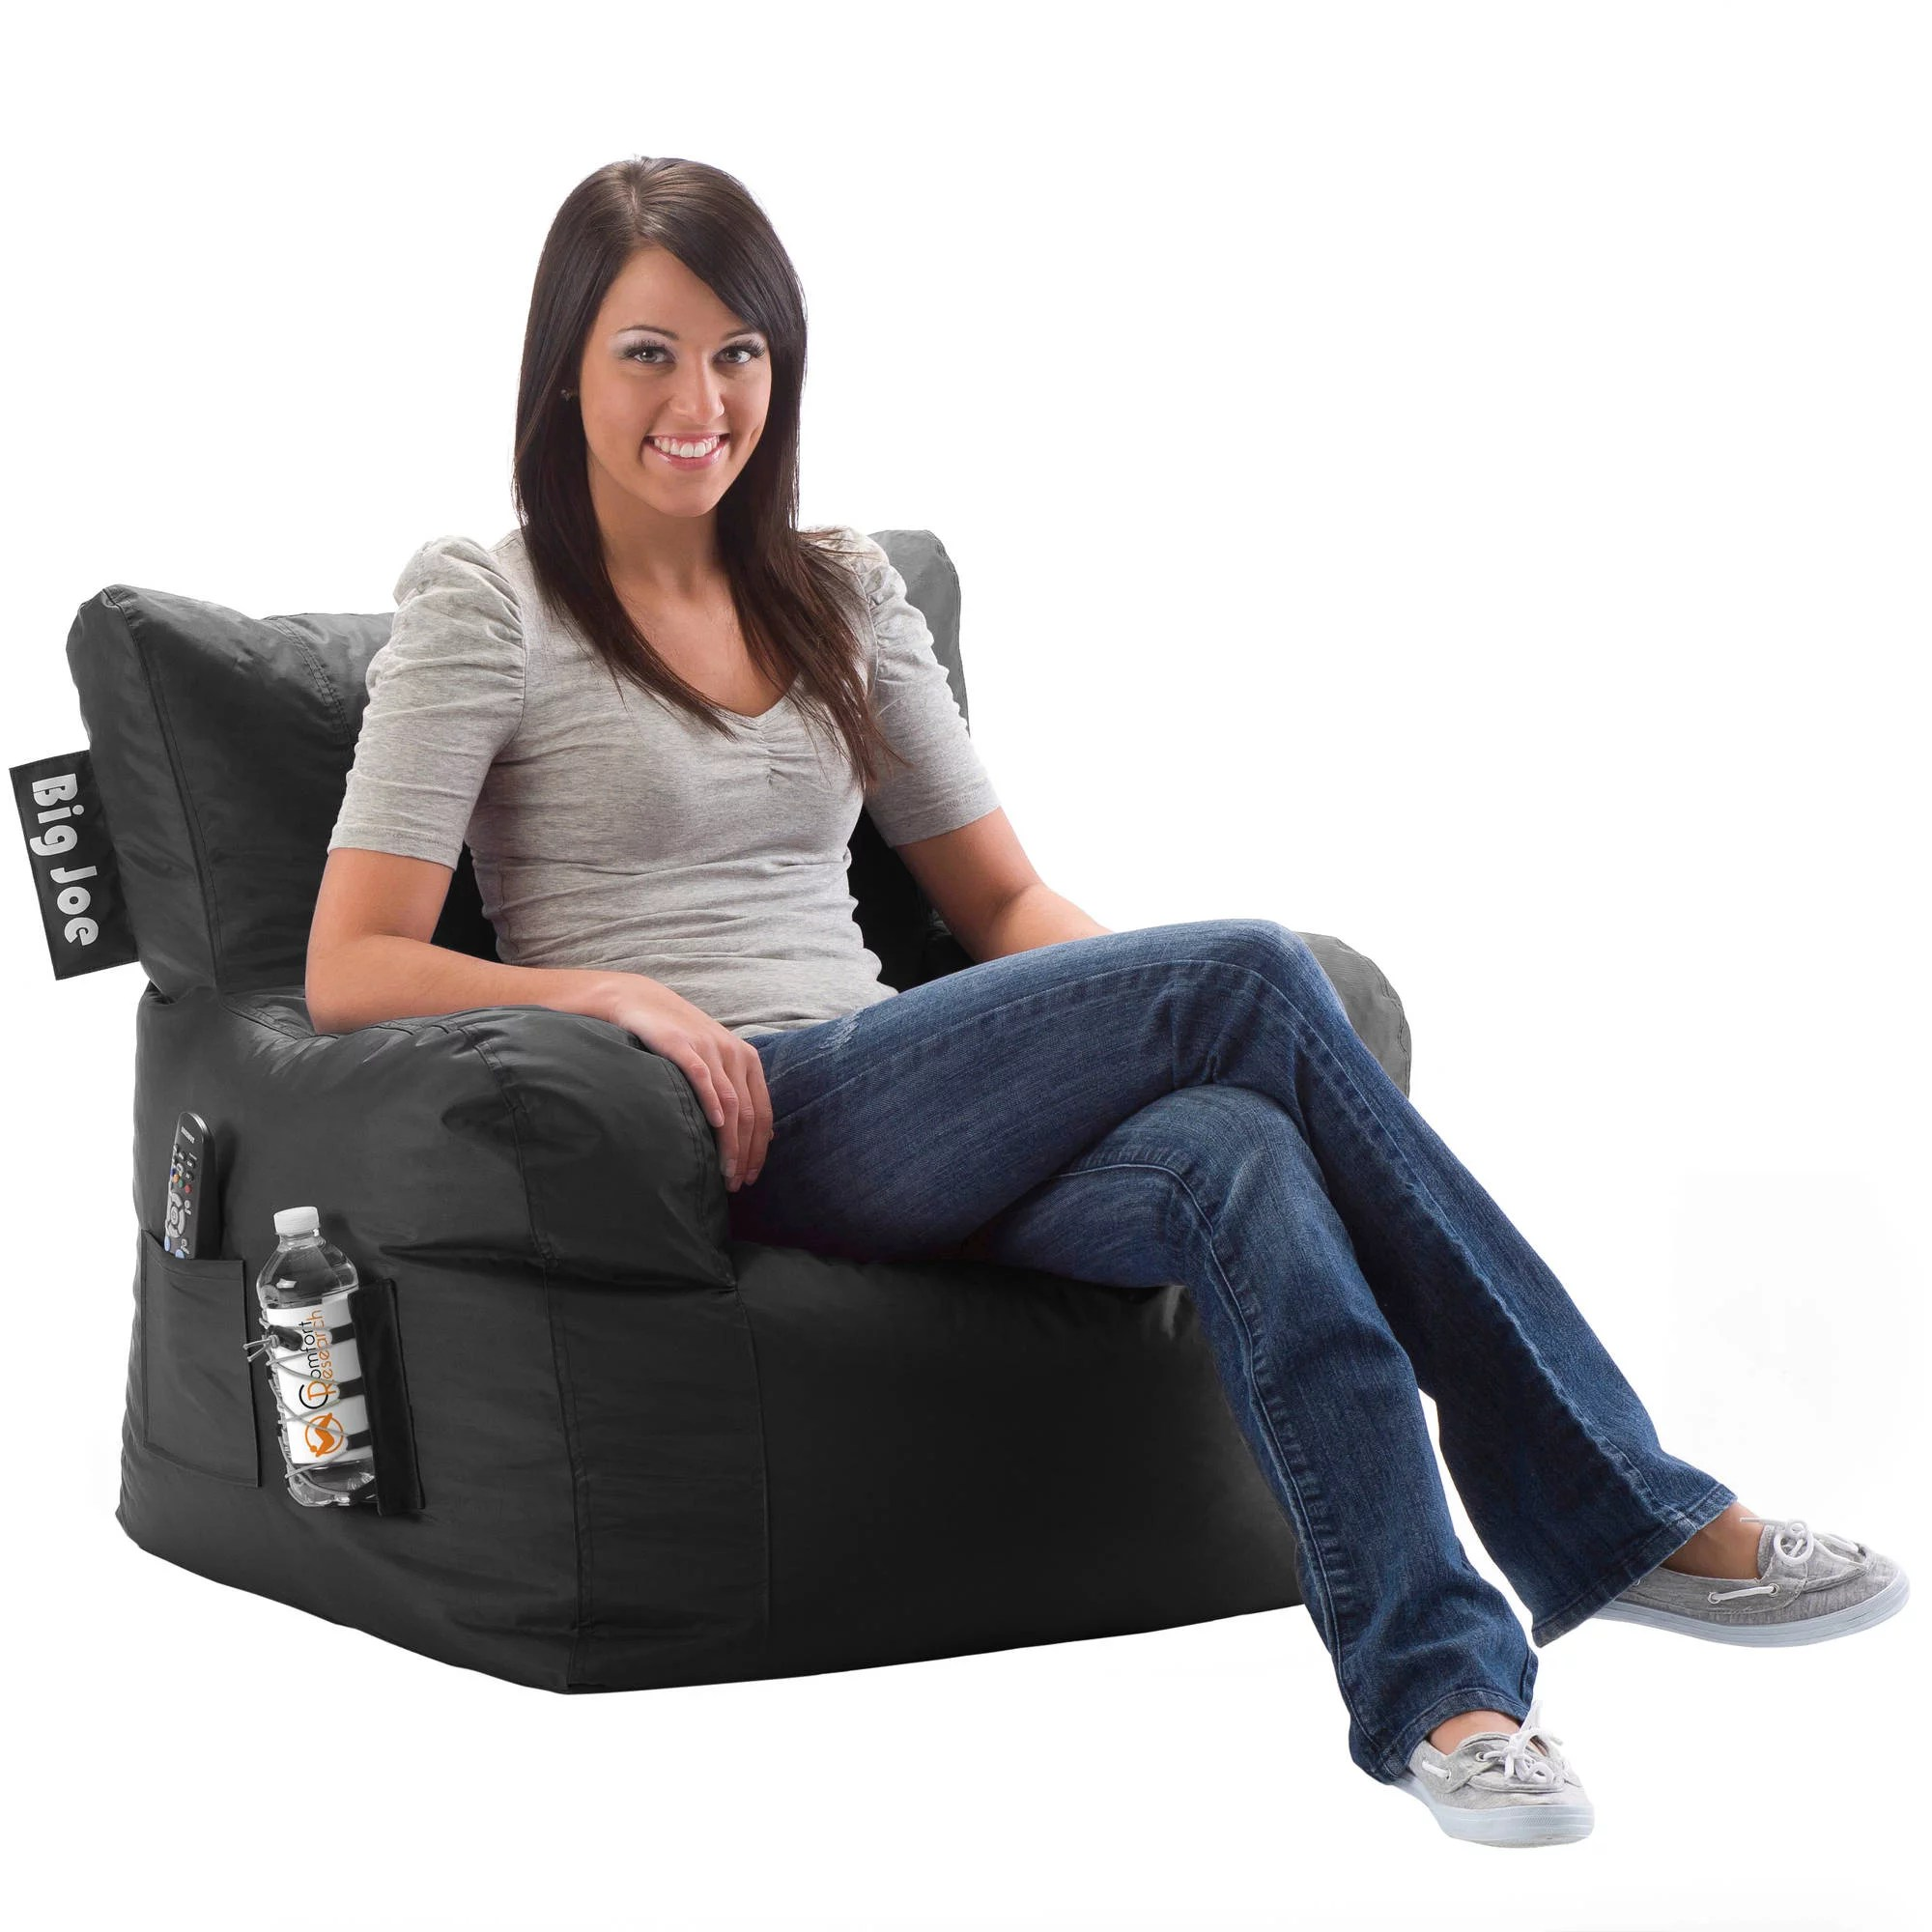 Where Can I Buy A Bean Bag Chair Big Joe Bean Bag Chair Multiple Colors Black Ebay